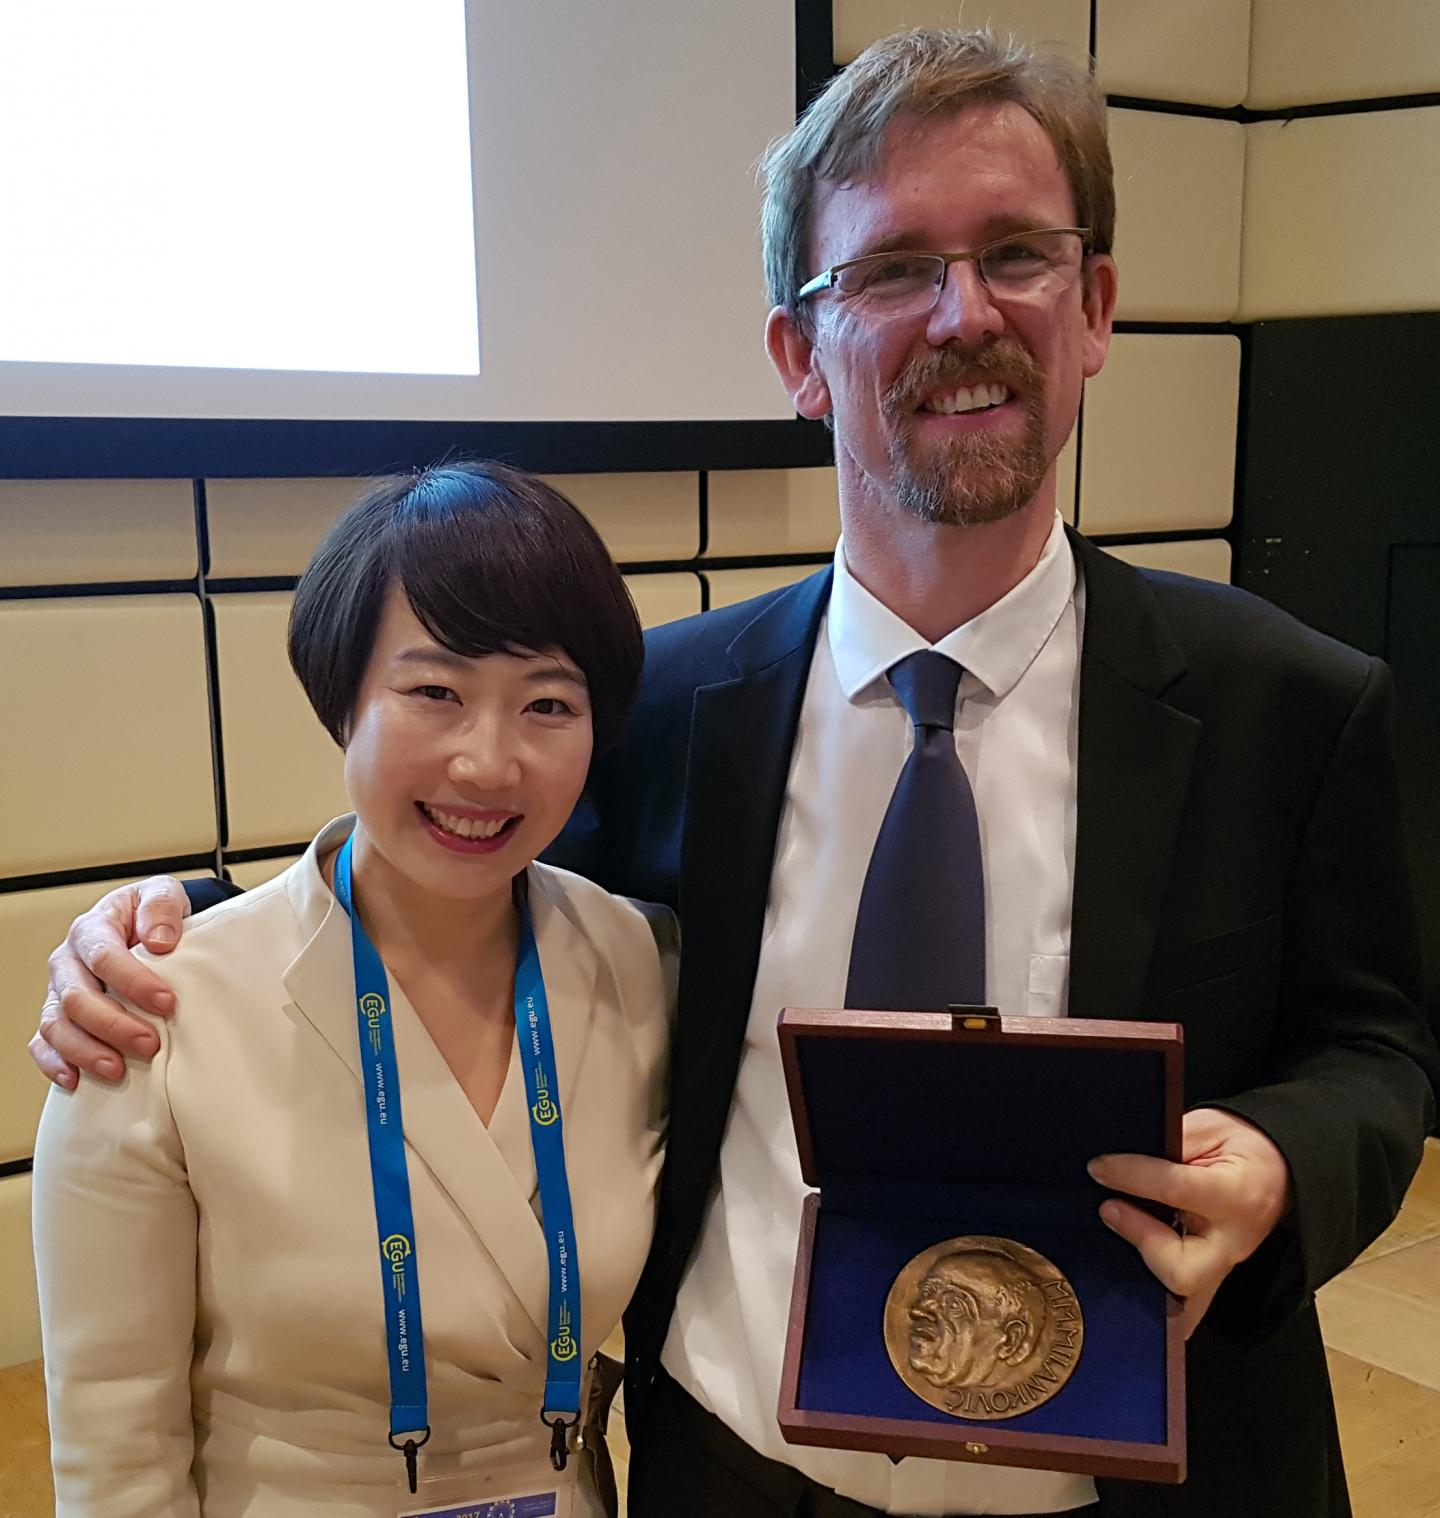 The 2017 Milutin Milankovic Medal is Awarded to ICCP Director Axel Timmermann